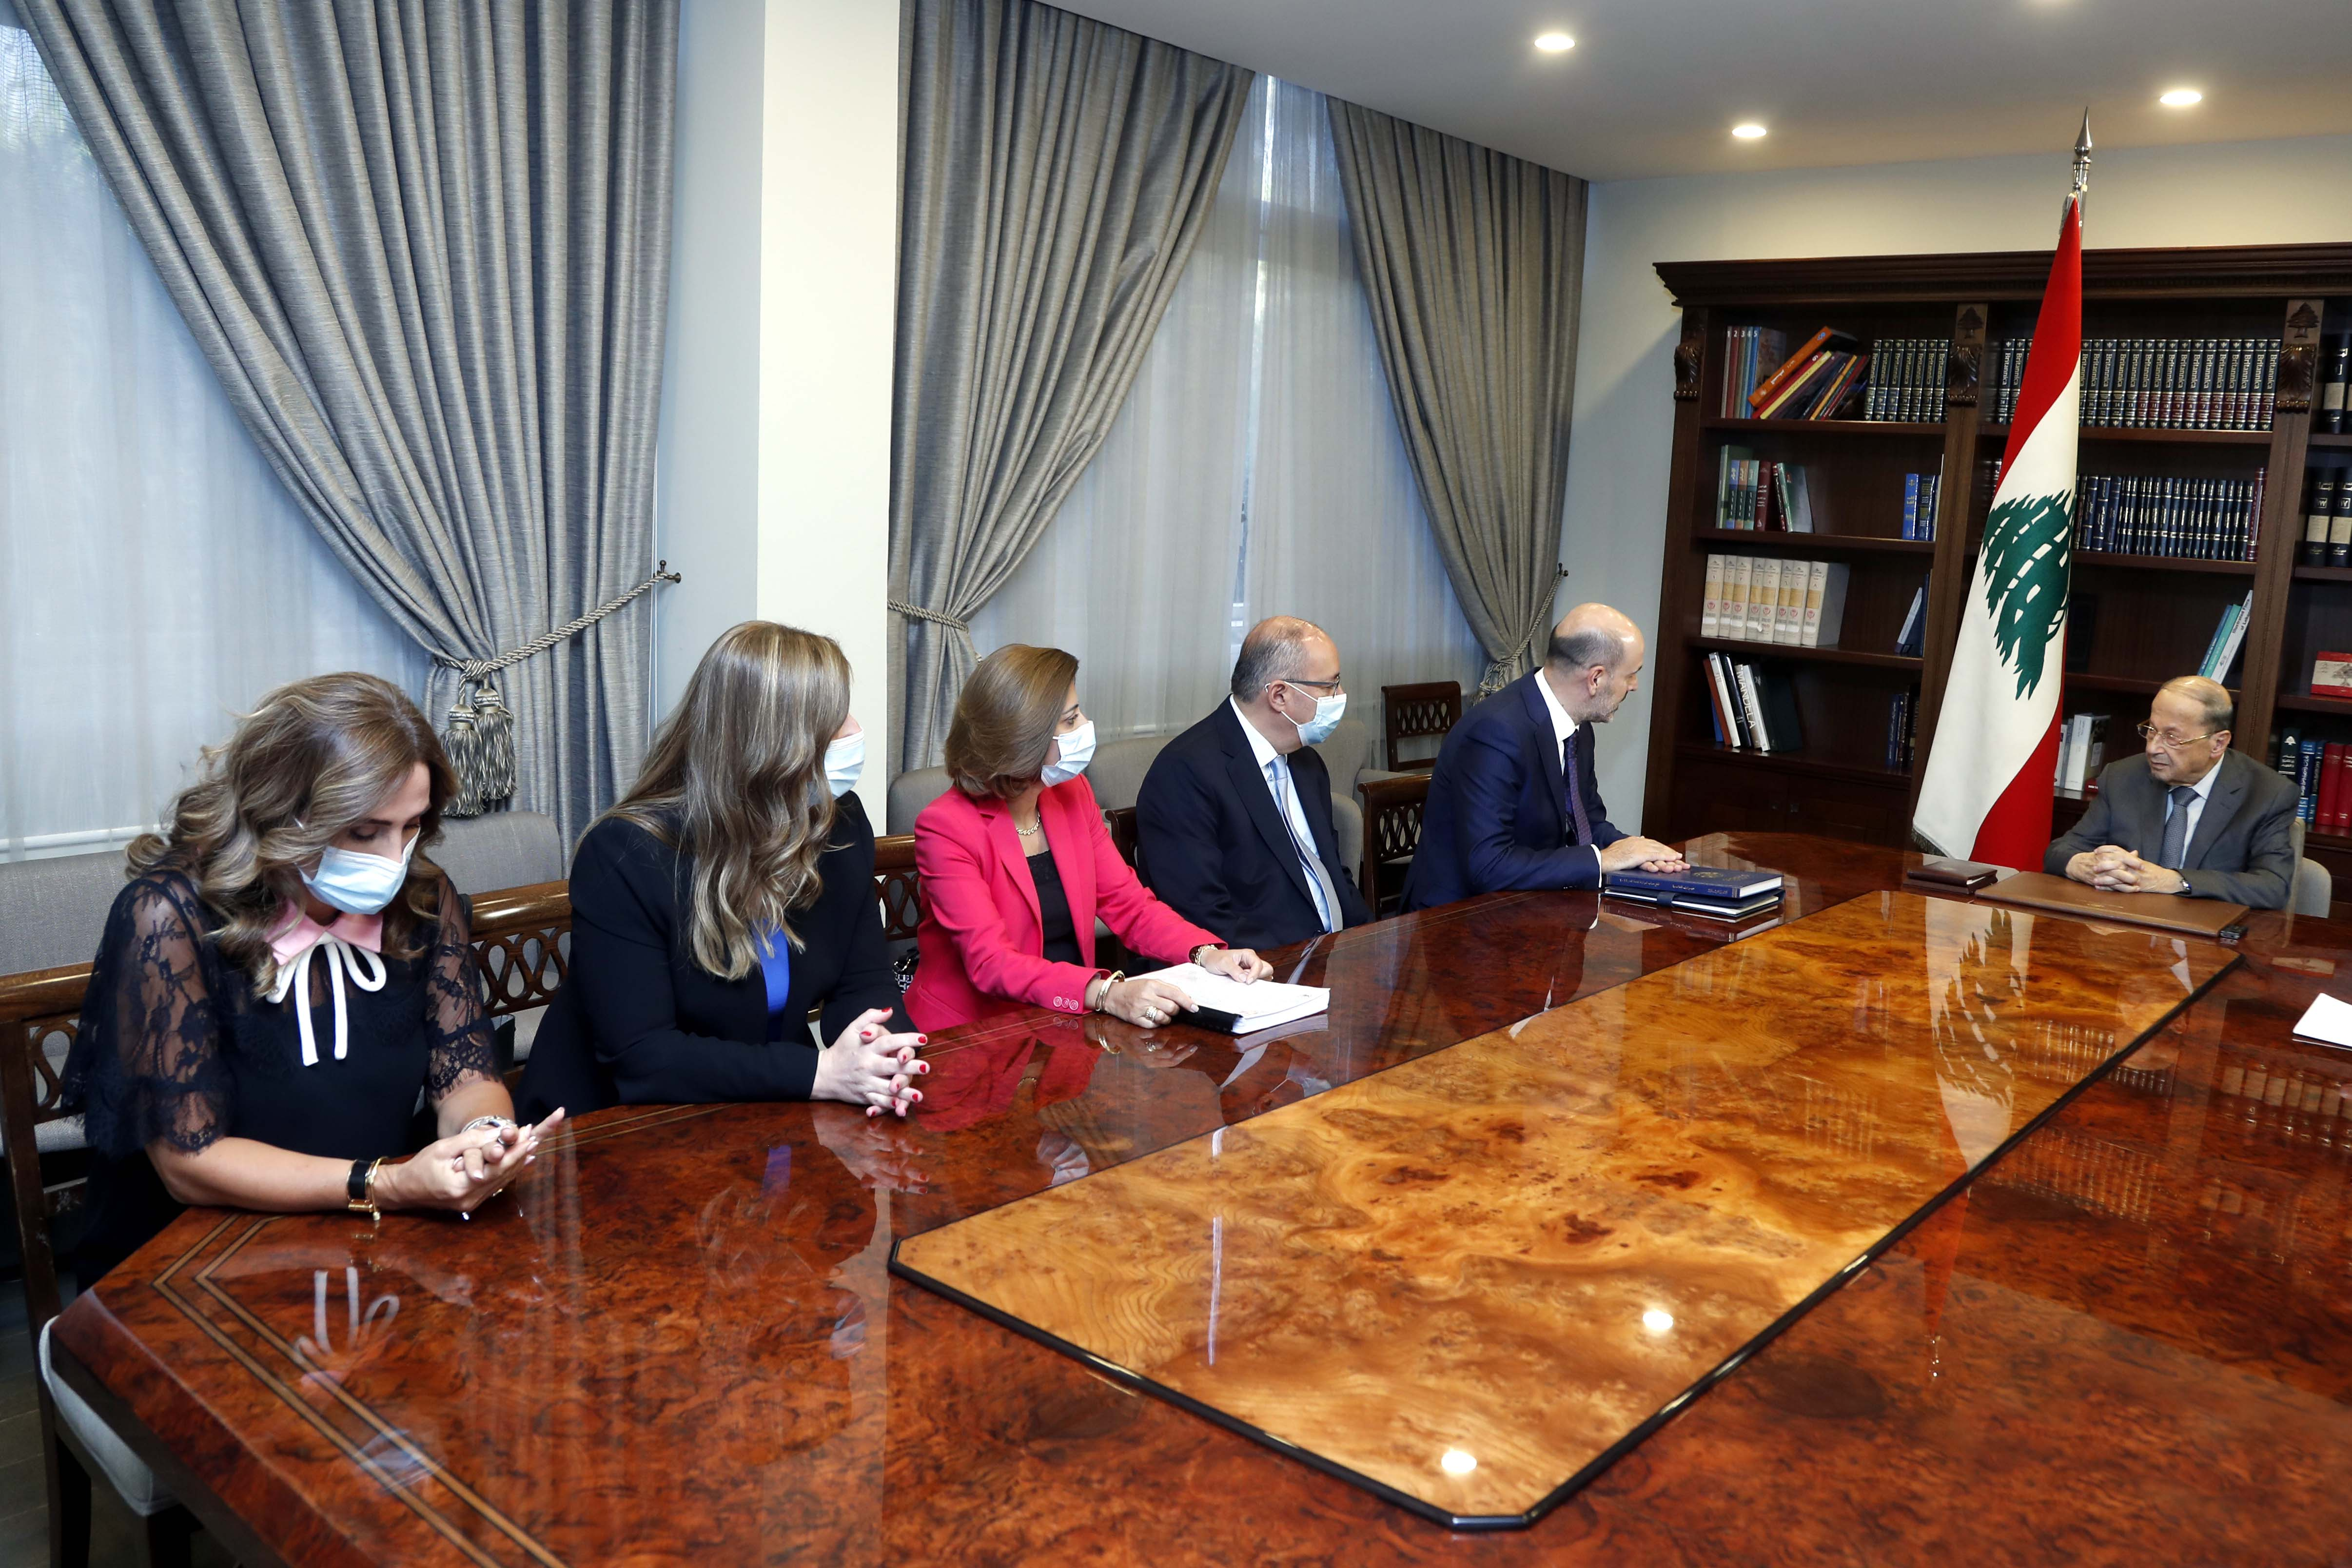 1 - Judge Mohamad Badran with a delegation (2)